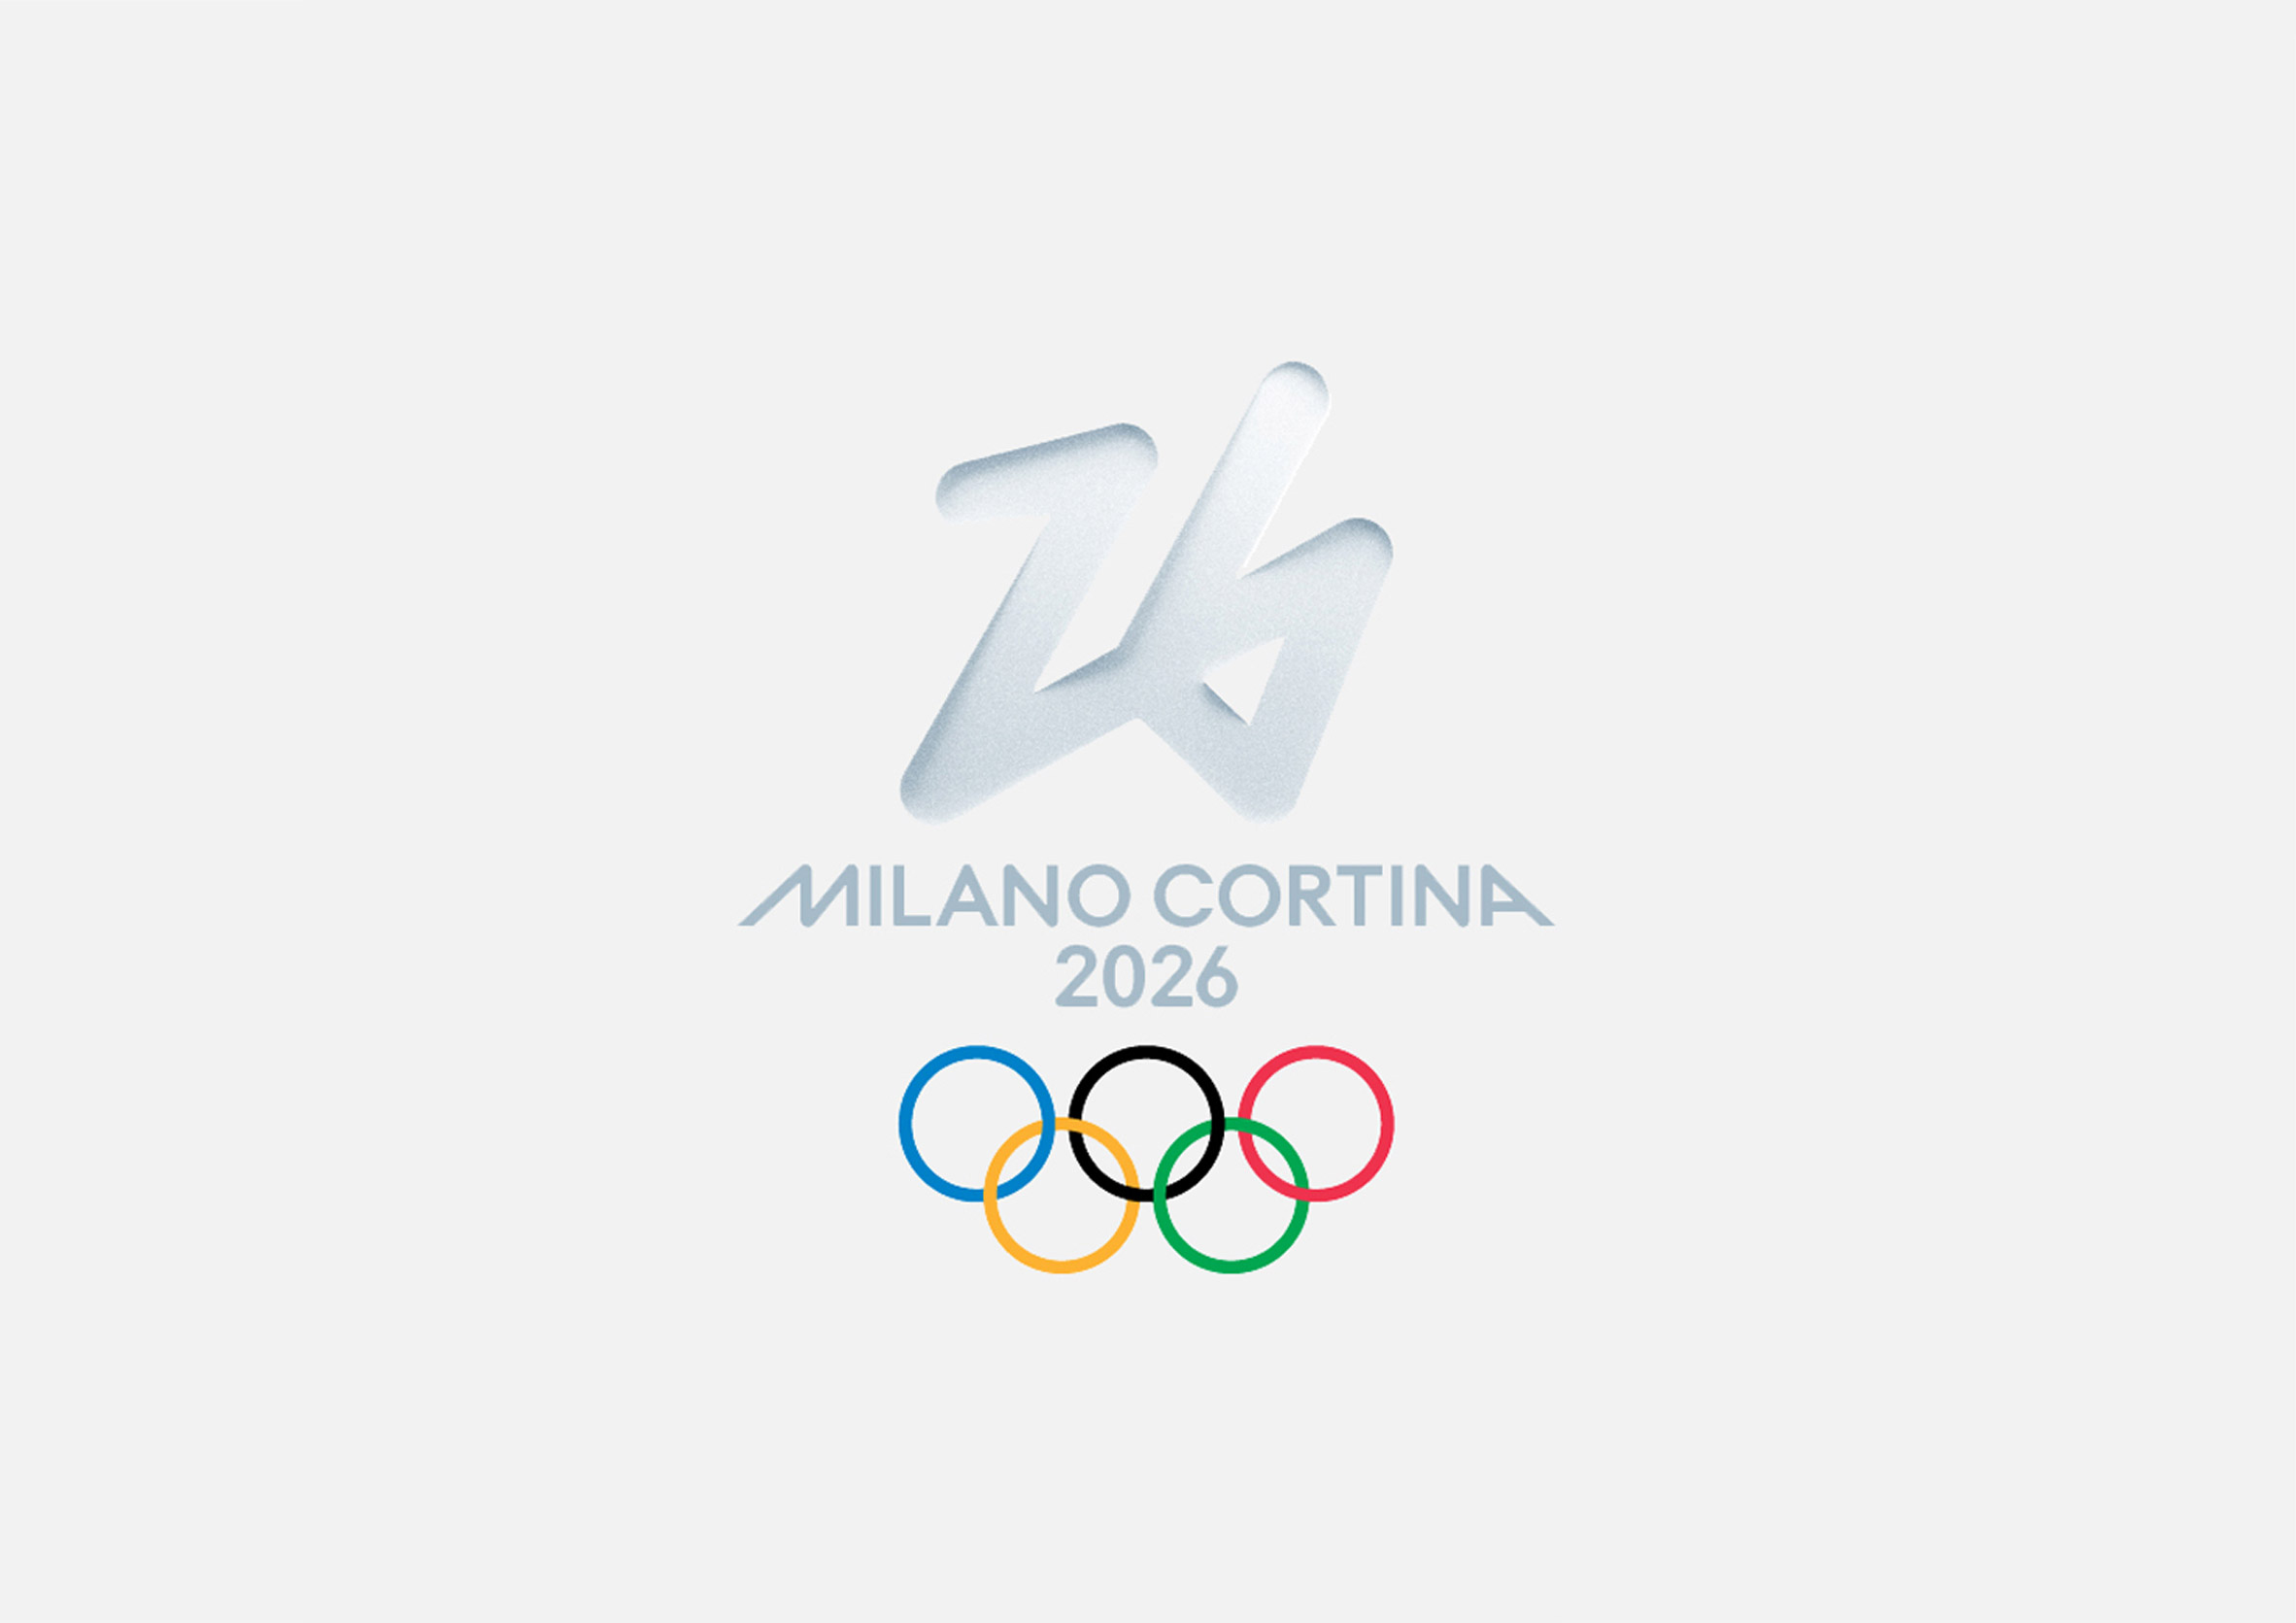 The 2026 Winter Olympic Games has an angular design